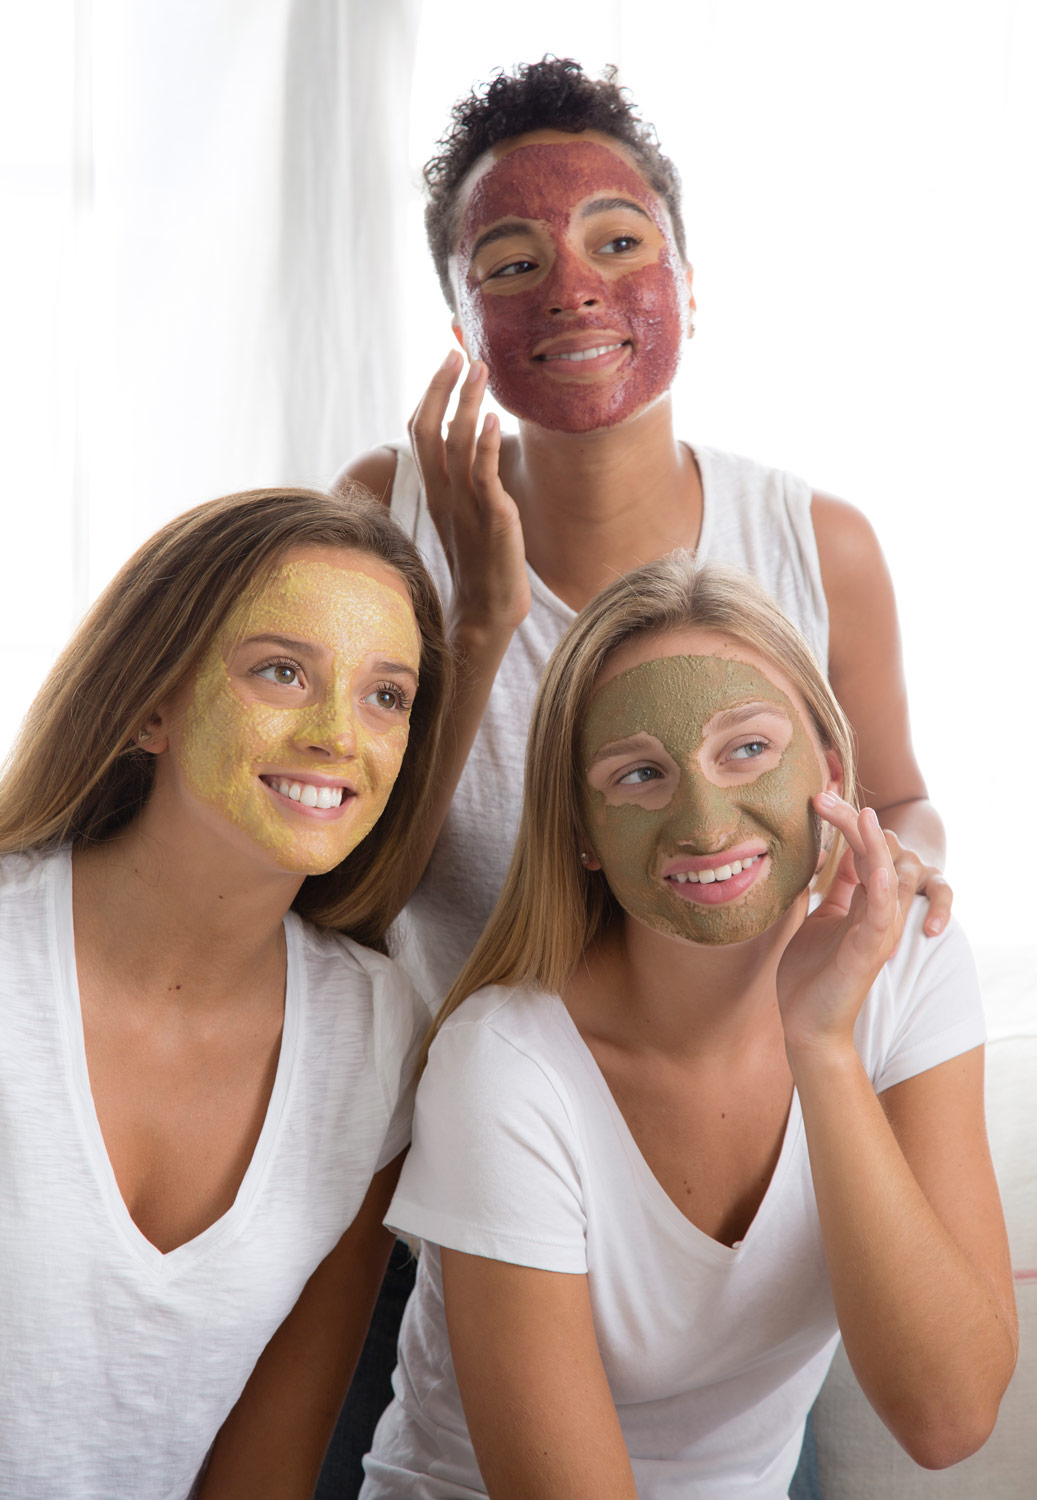 Autumn Facial, sea and tea facial, bee inspired facial each on a different model beautiful on the inside and out